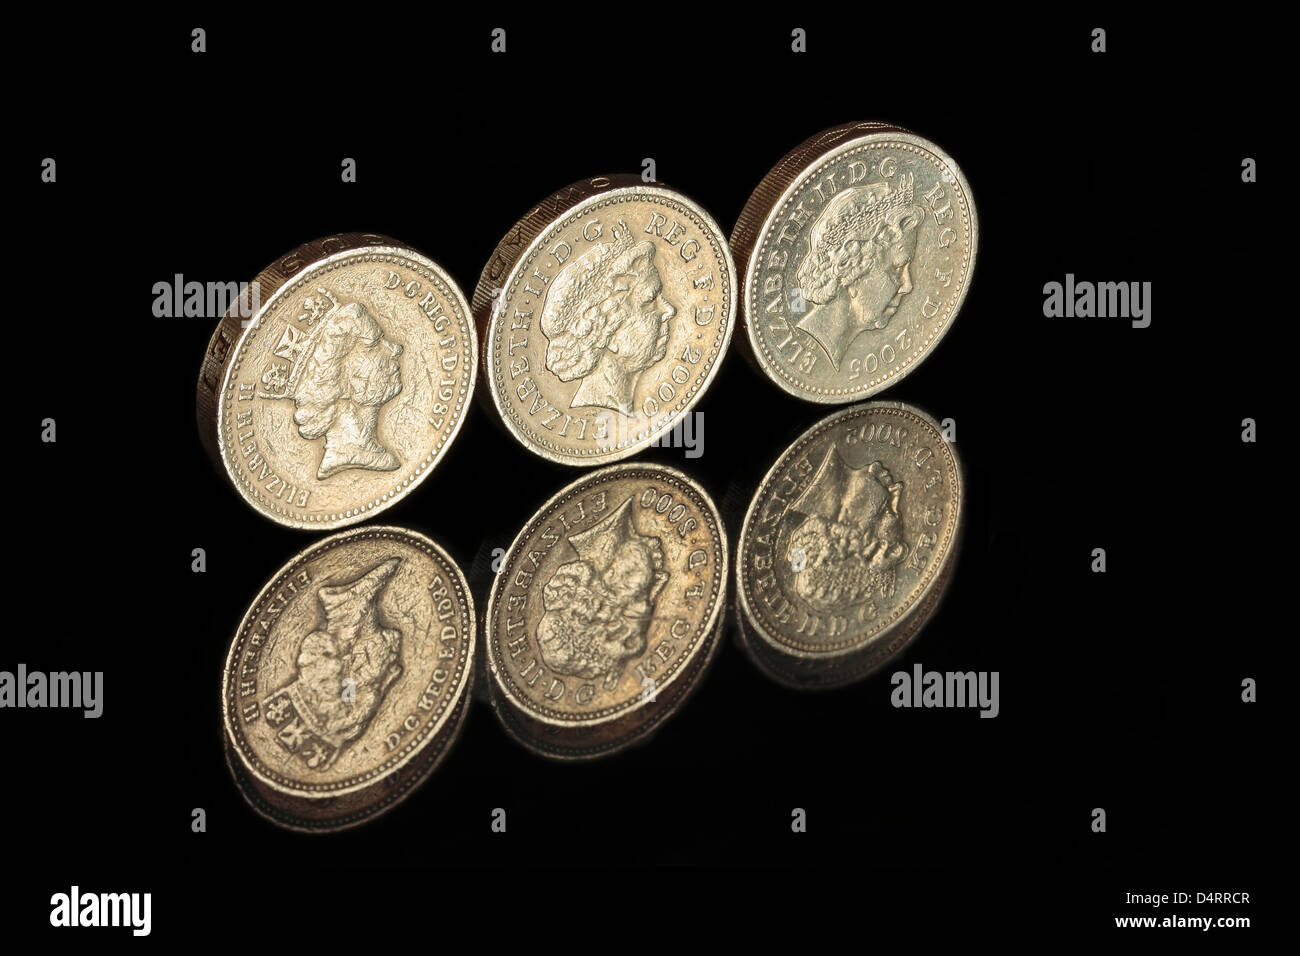 english currency coins stockfotos english currency coins bilder seite 2 alamy. Black Bedroom Furniture Sets. Home Design Ideas